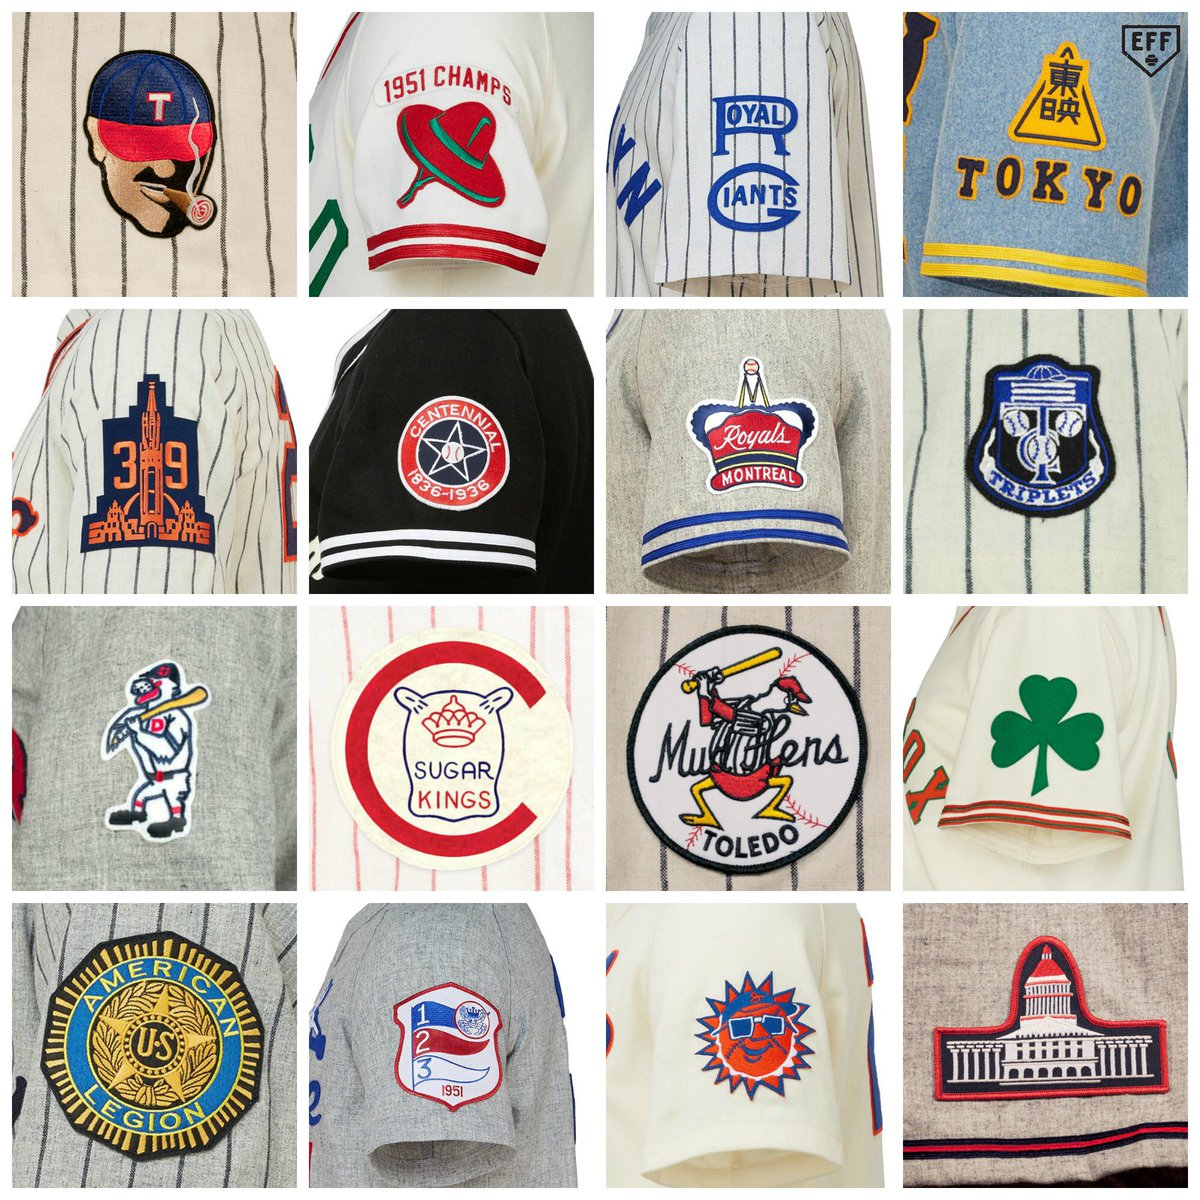 If cool vintage baseball patches is your thing, sleeve it up to us!  #Mondaythoughts <br>http://pic.twitter.com/ntBTCSx4tH